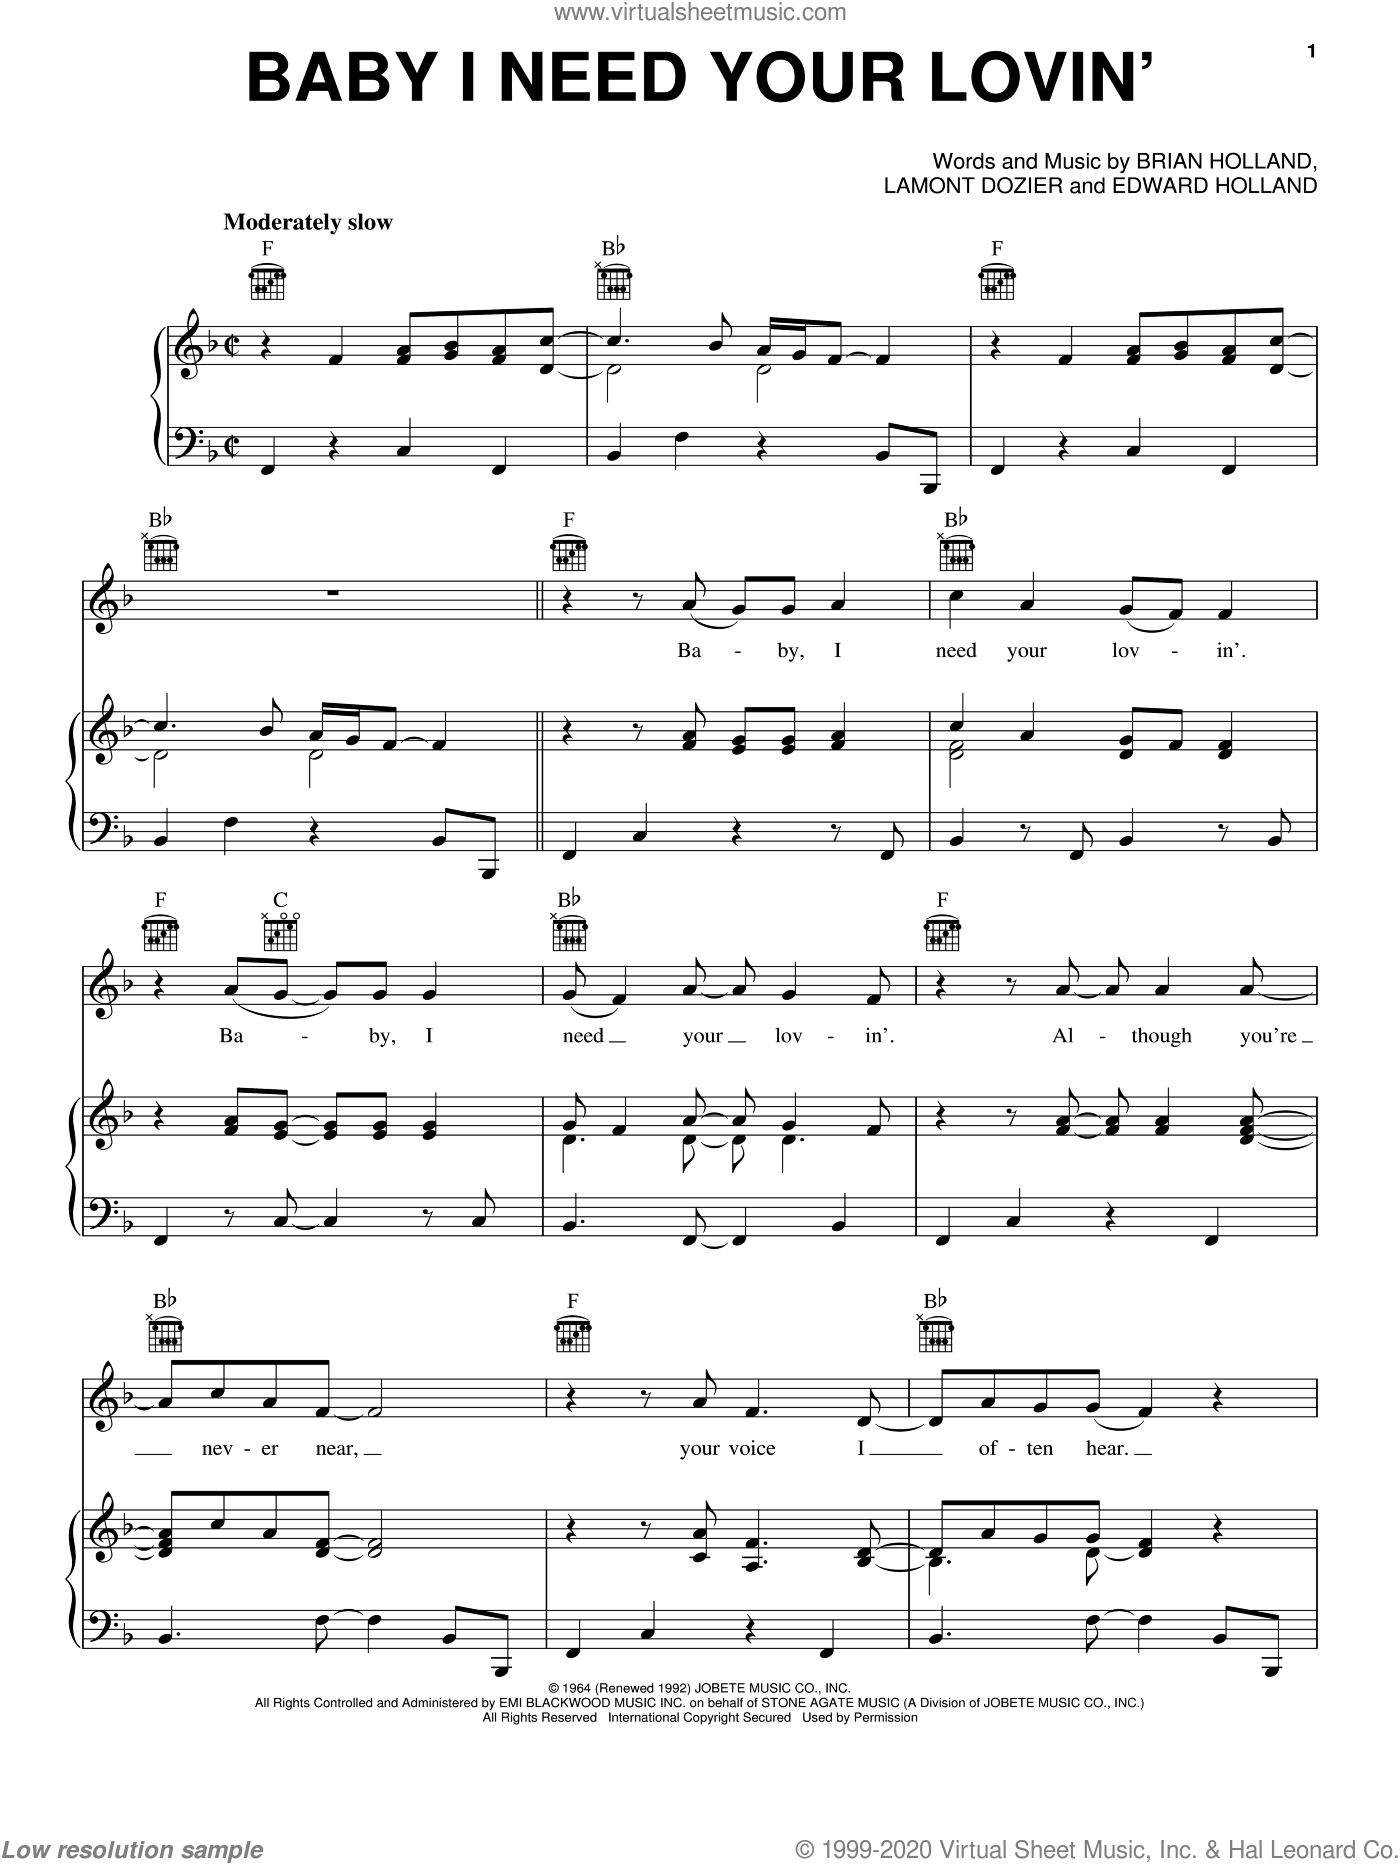 Baby I Need Your Lovin' sheet music for voice, piano or guitar by The Four Tops, Michael McDonald and Brian Holland, intermediate. Score Image Preview.